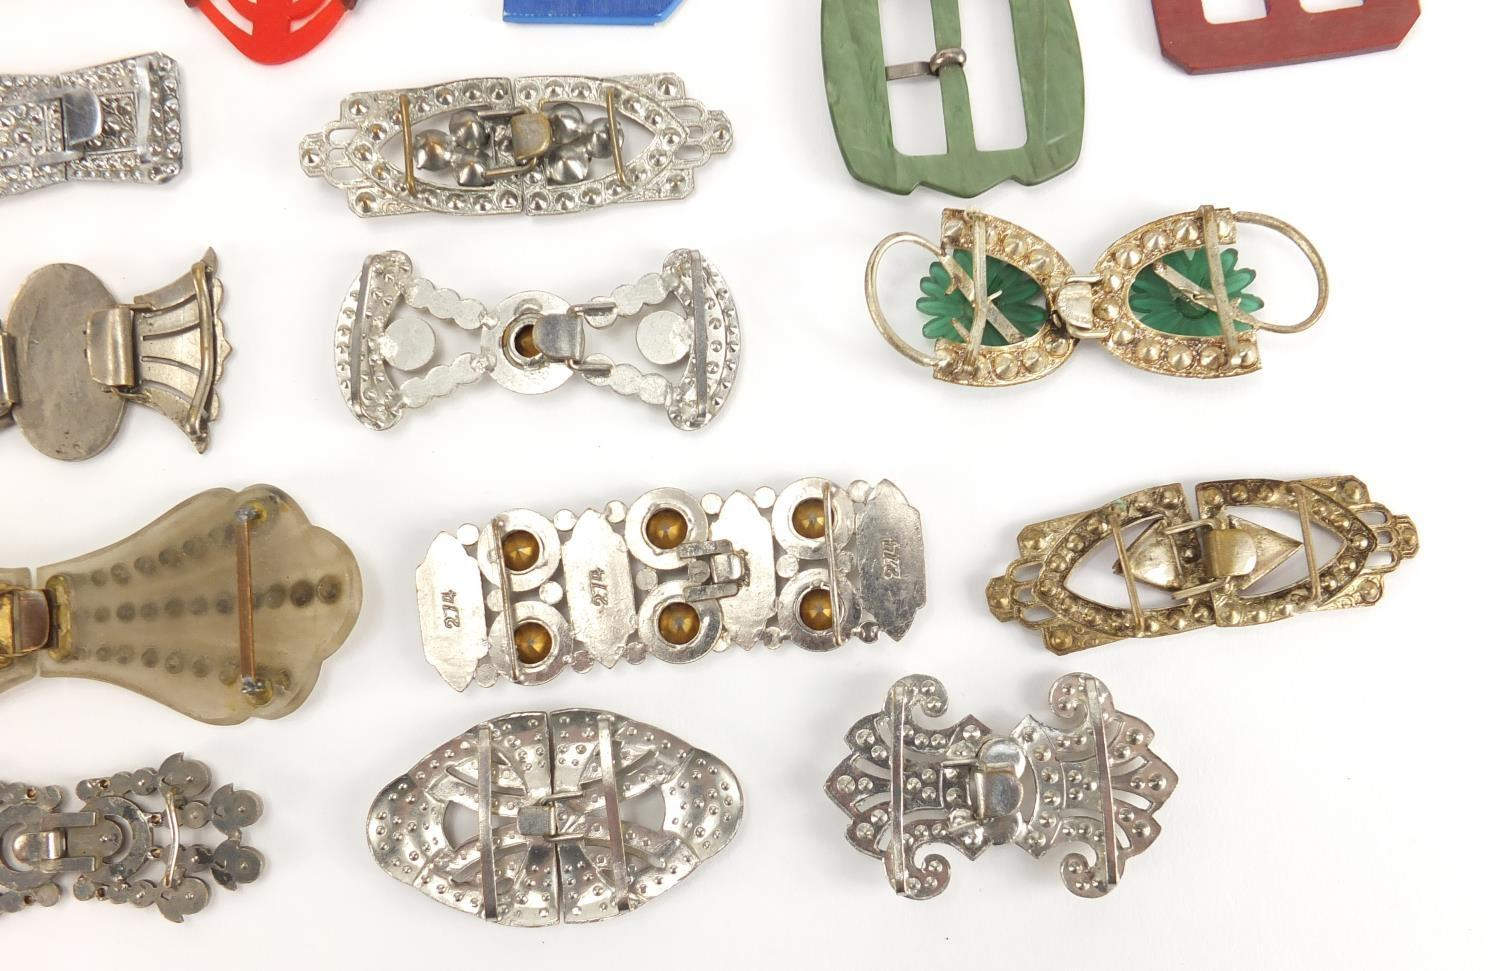 Lot 24 - Art Deco and later buckles, some two piece including Bakelite and Marcasite, the largest 10.5cm wide